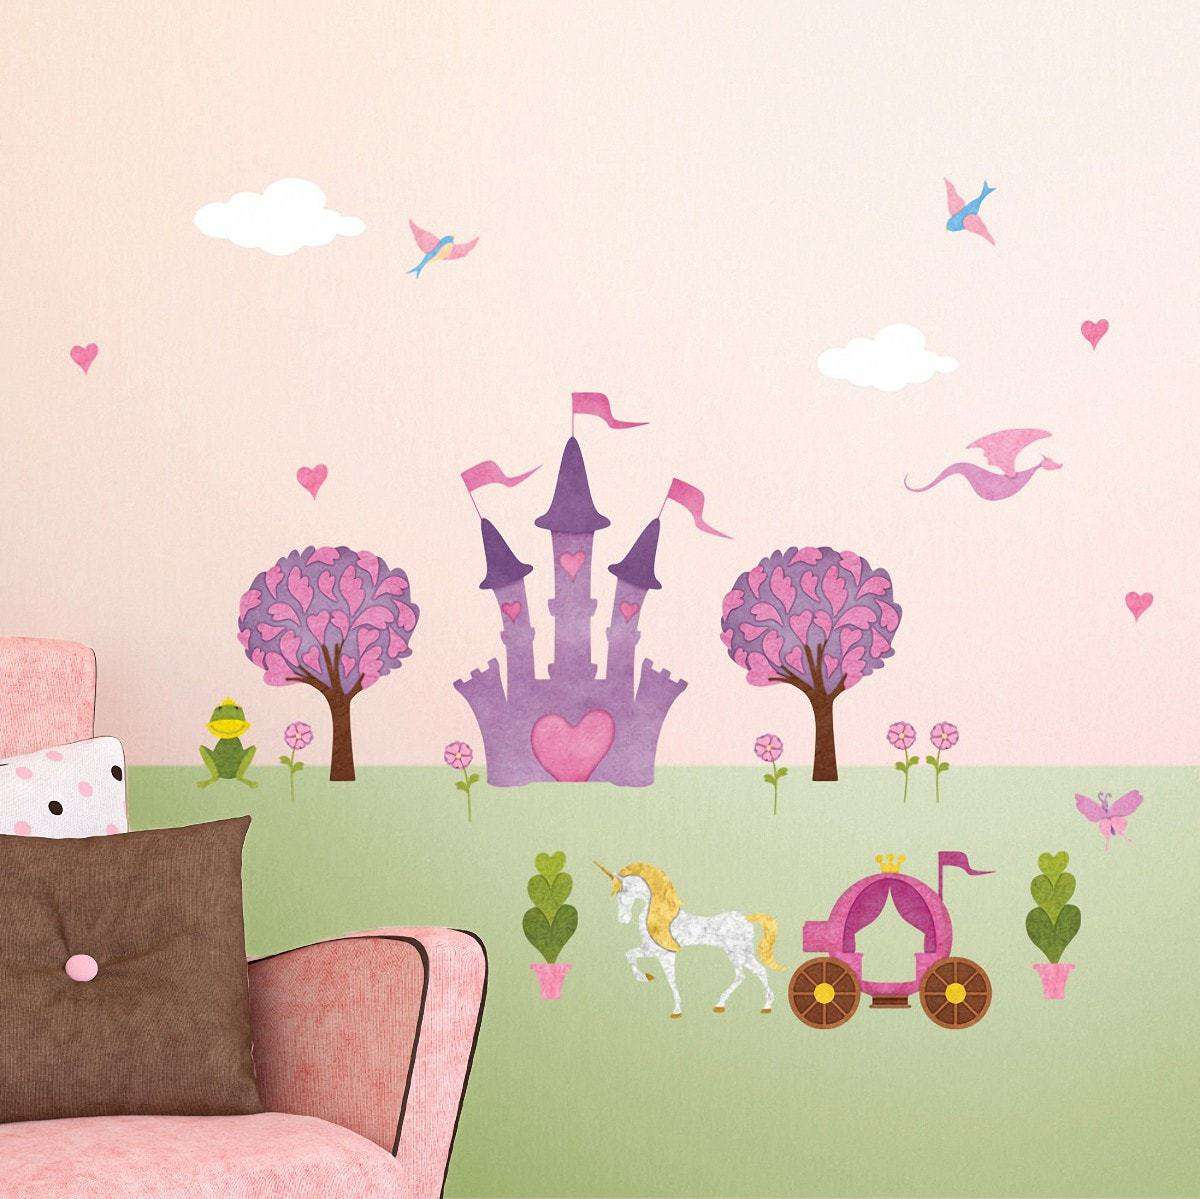 Princess Wall Sticker U2013 Peel U0026 Stick Decals For Princess Wall Mural With  Large Princess Castle ...